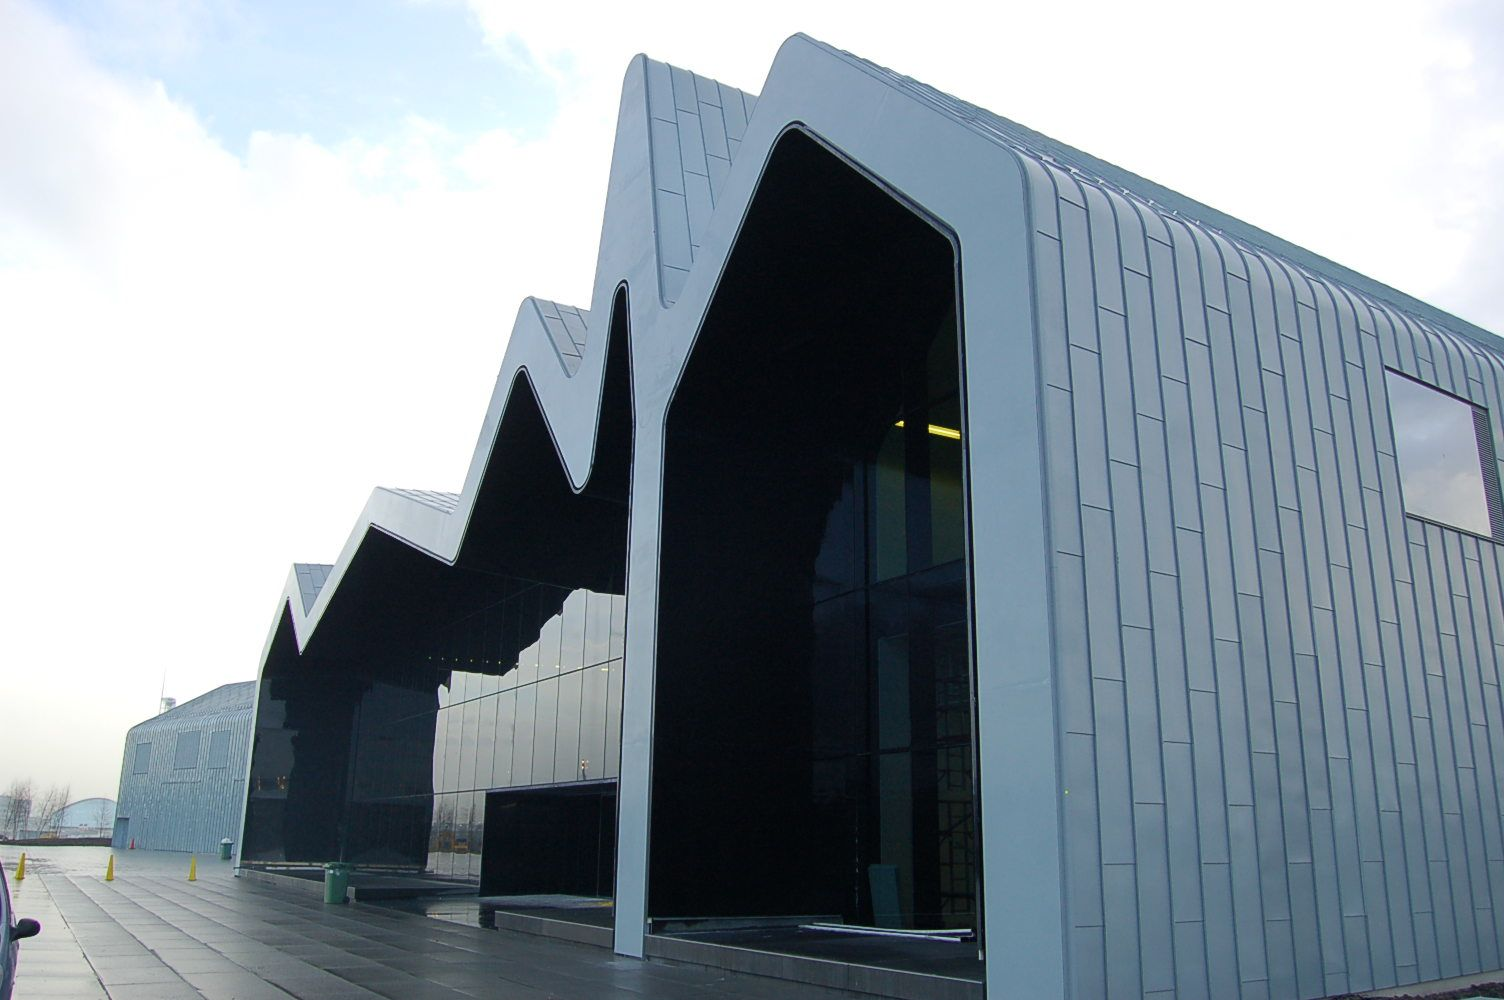 glasgow riverside museum of transport completed zaha hadid. Black Bedroom Furniture Sets. Home Design Ideas